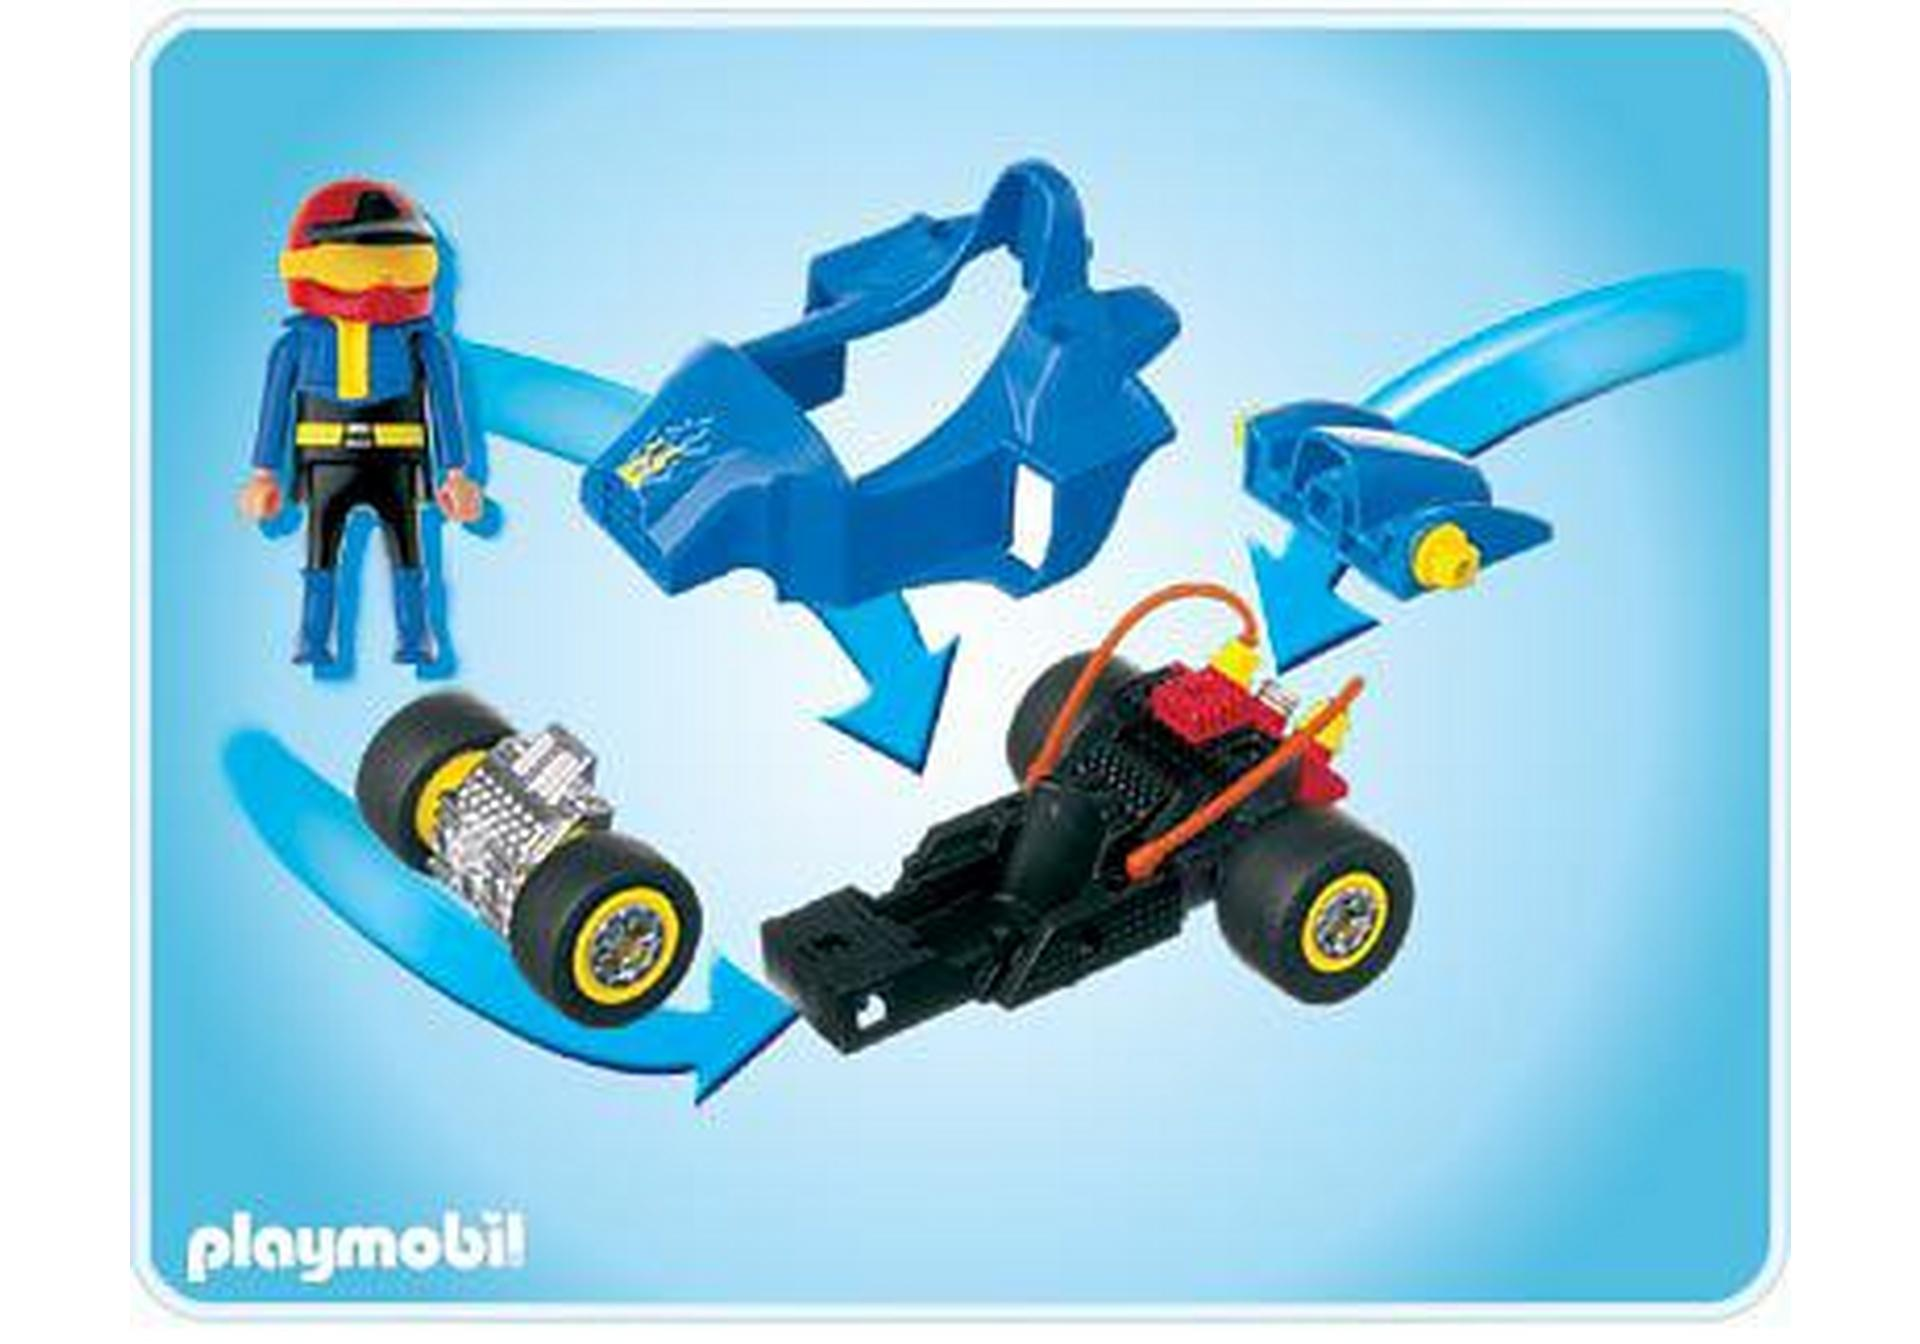 pilote avec voiture transformable bleue 4181 a playmobil france. Black Bedroom Furniture Sets. Home Design Ideas